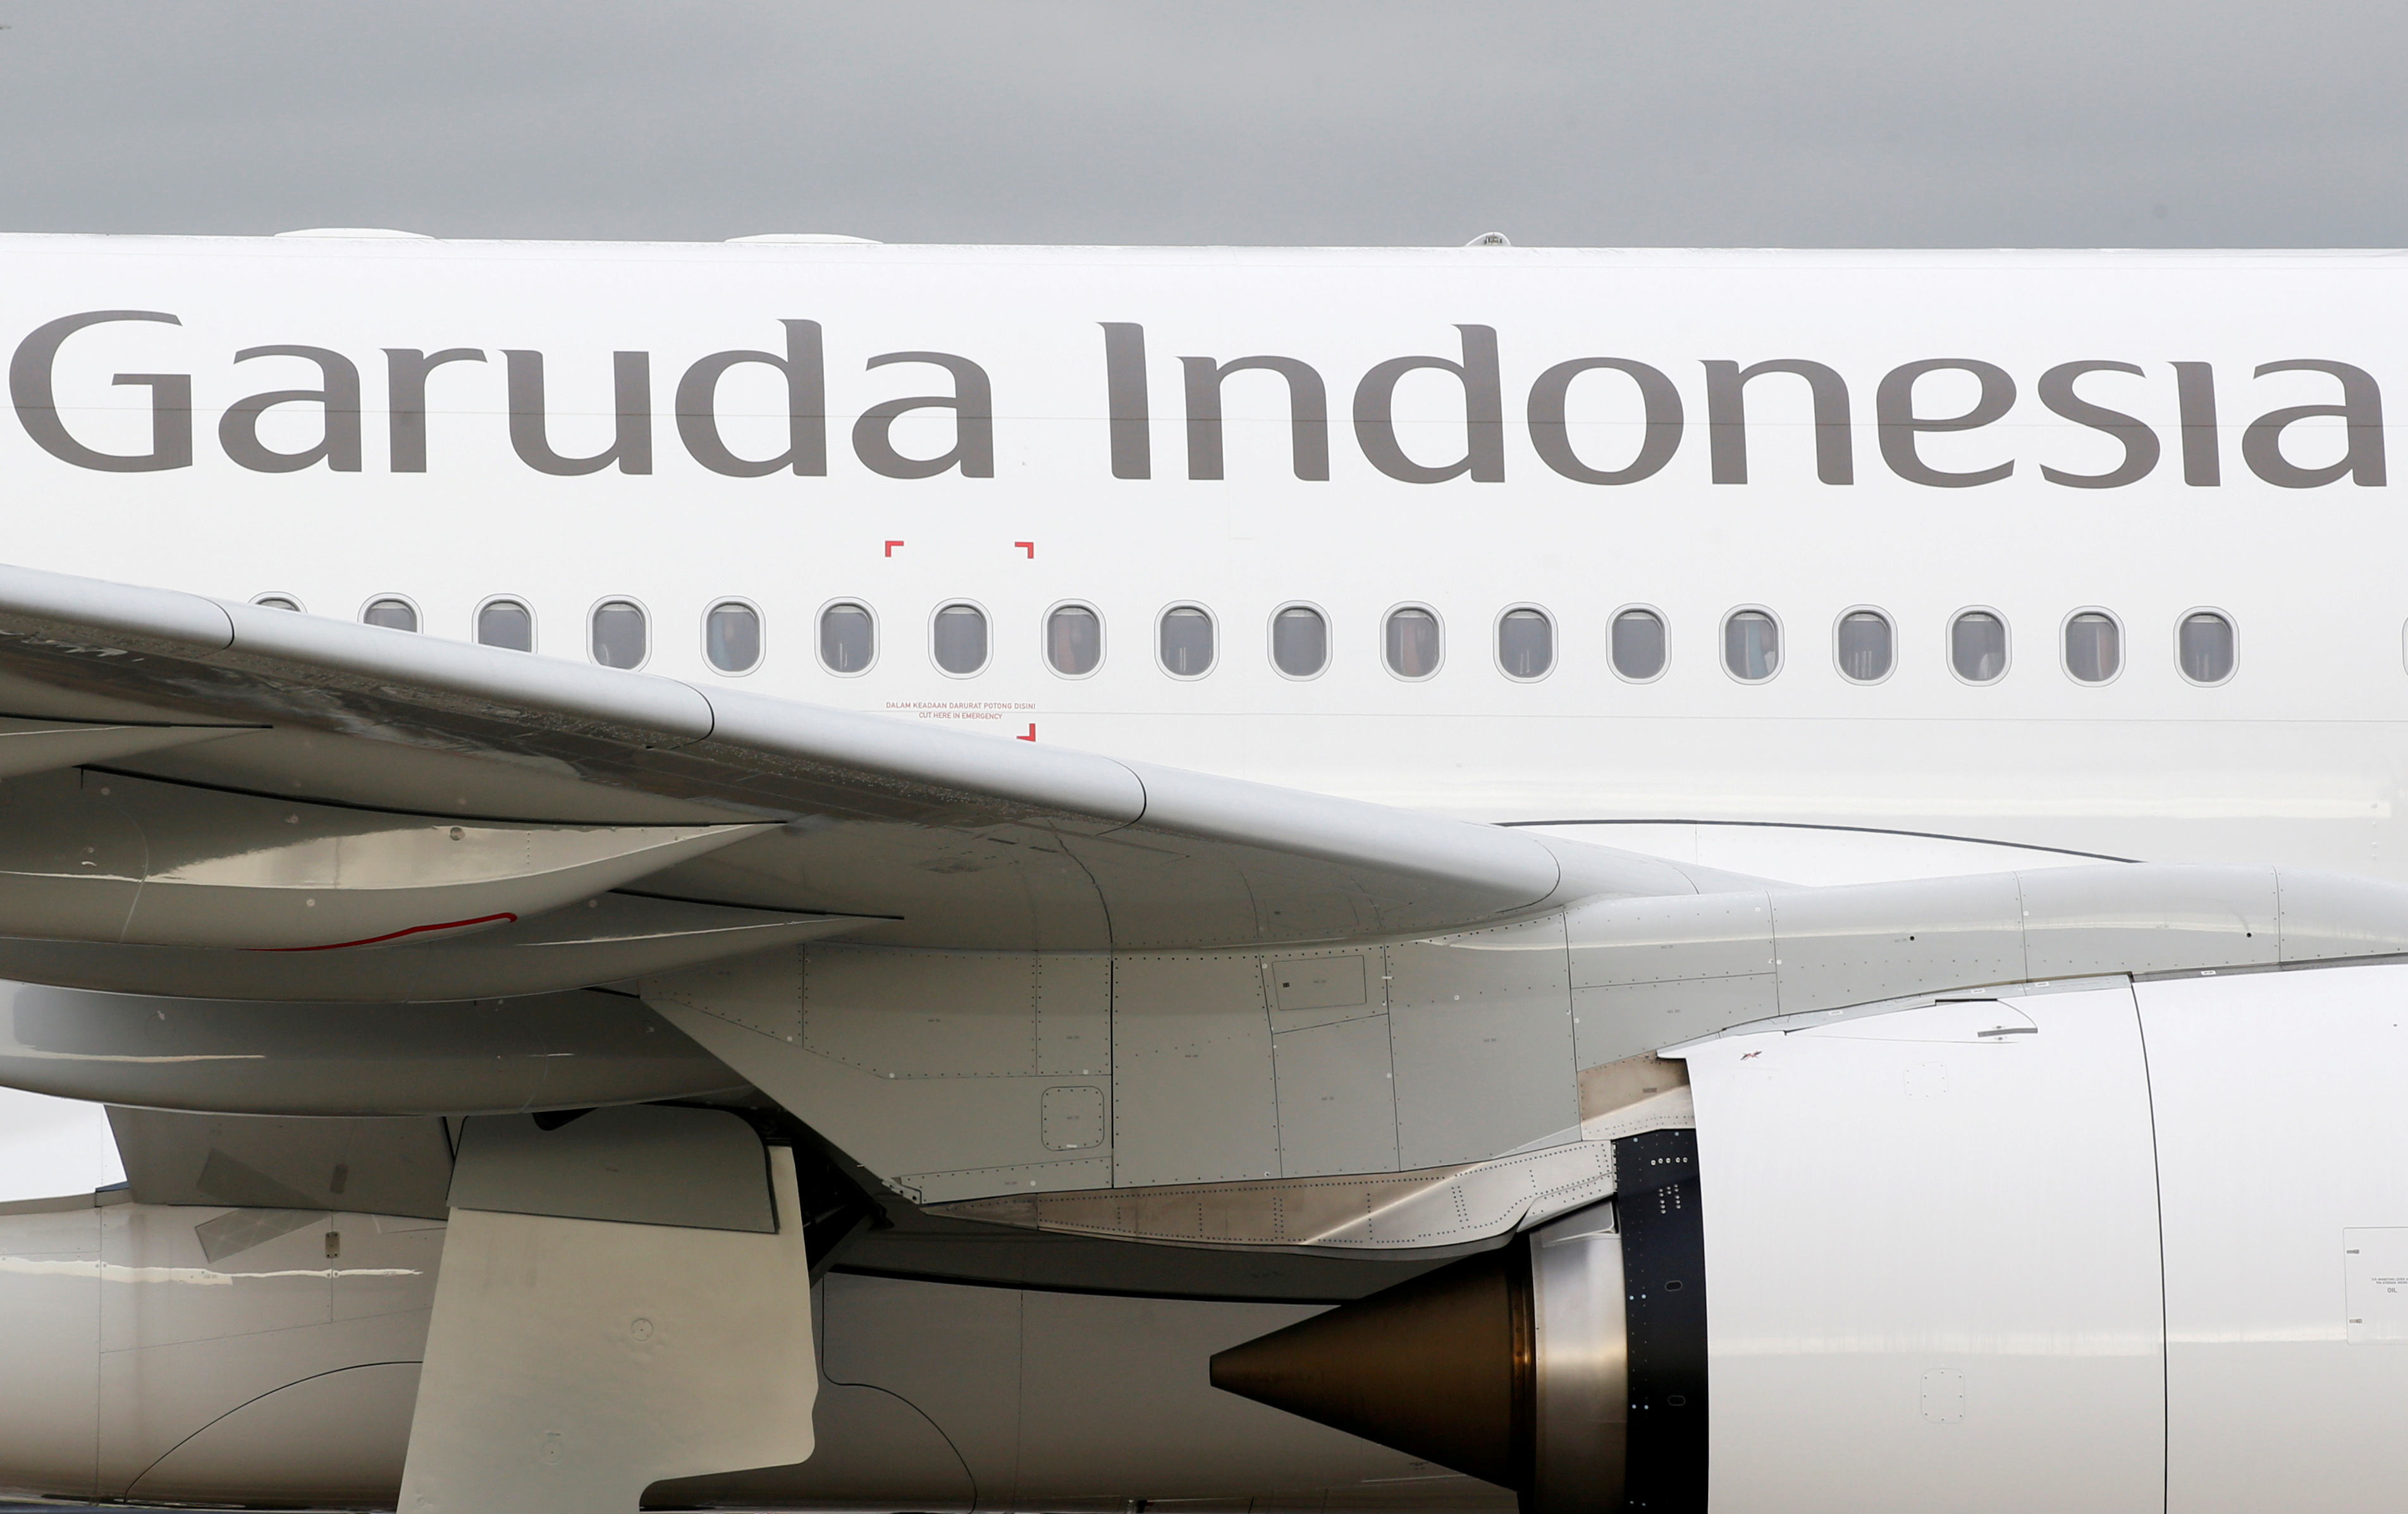 The logo of Garuda Indonesia is pictured on an Airbus A330 aircraft parked at the aircraft builder's headquarters of Airbus in Colomiers near Toulouse, France, November 15, 2019. REUTERS/Regis Duvignau/File Photo